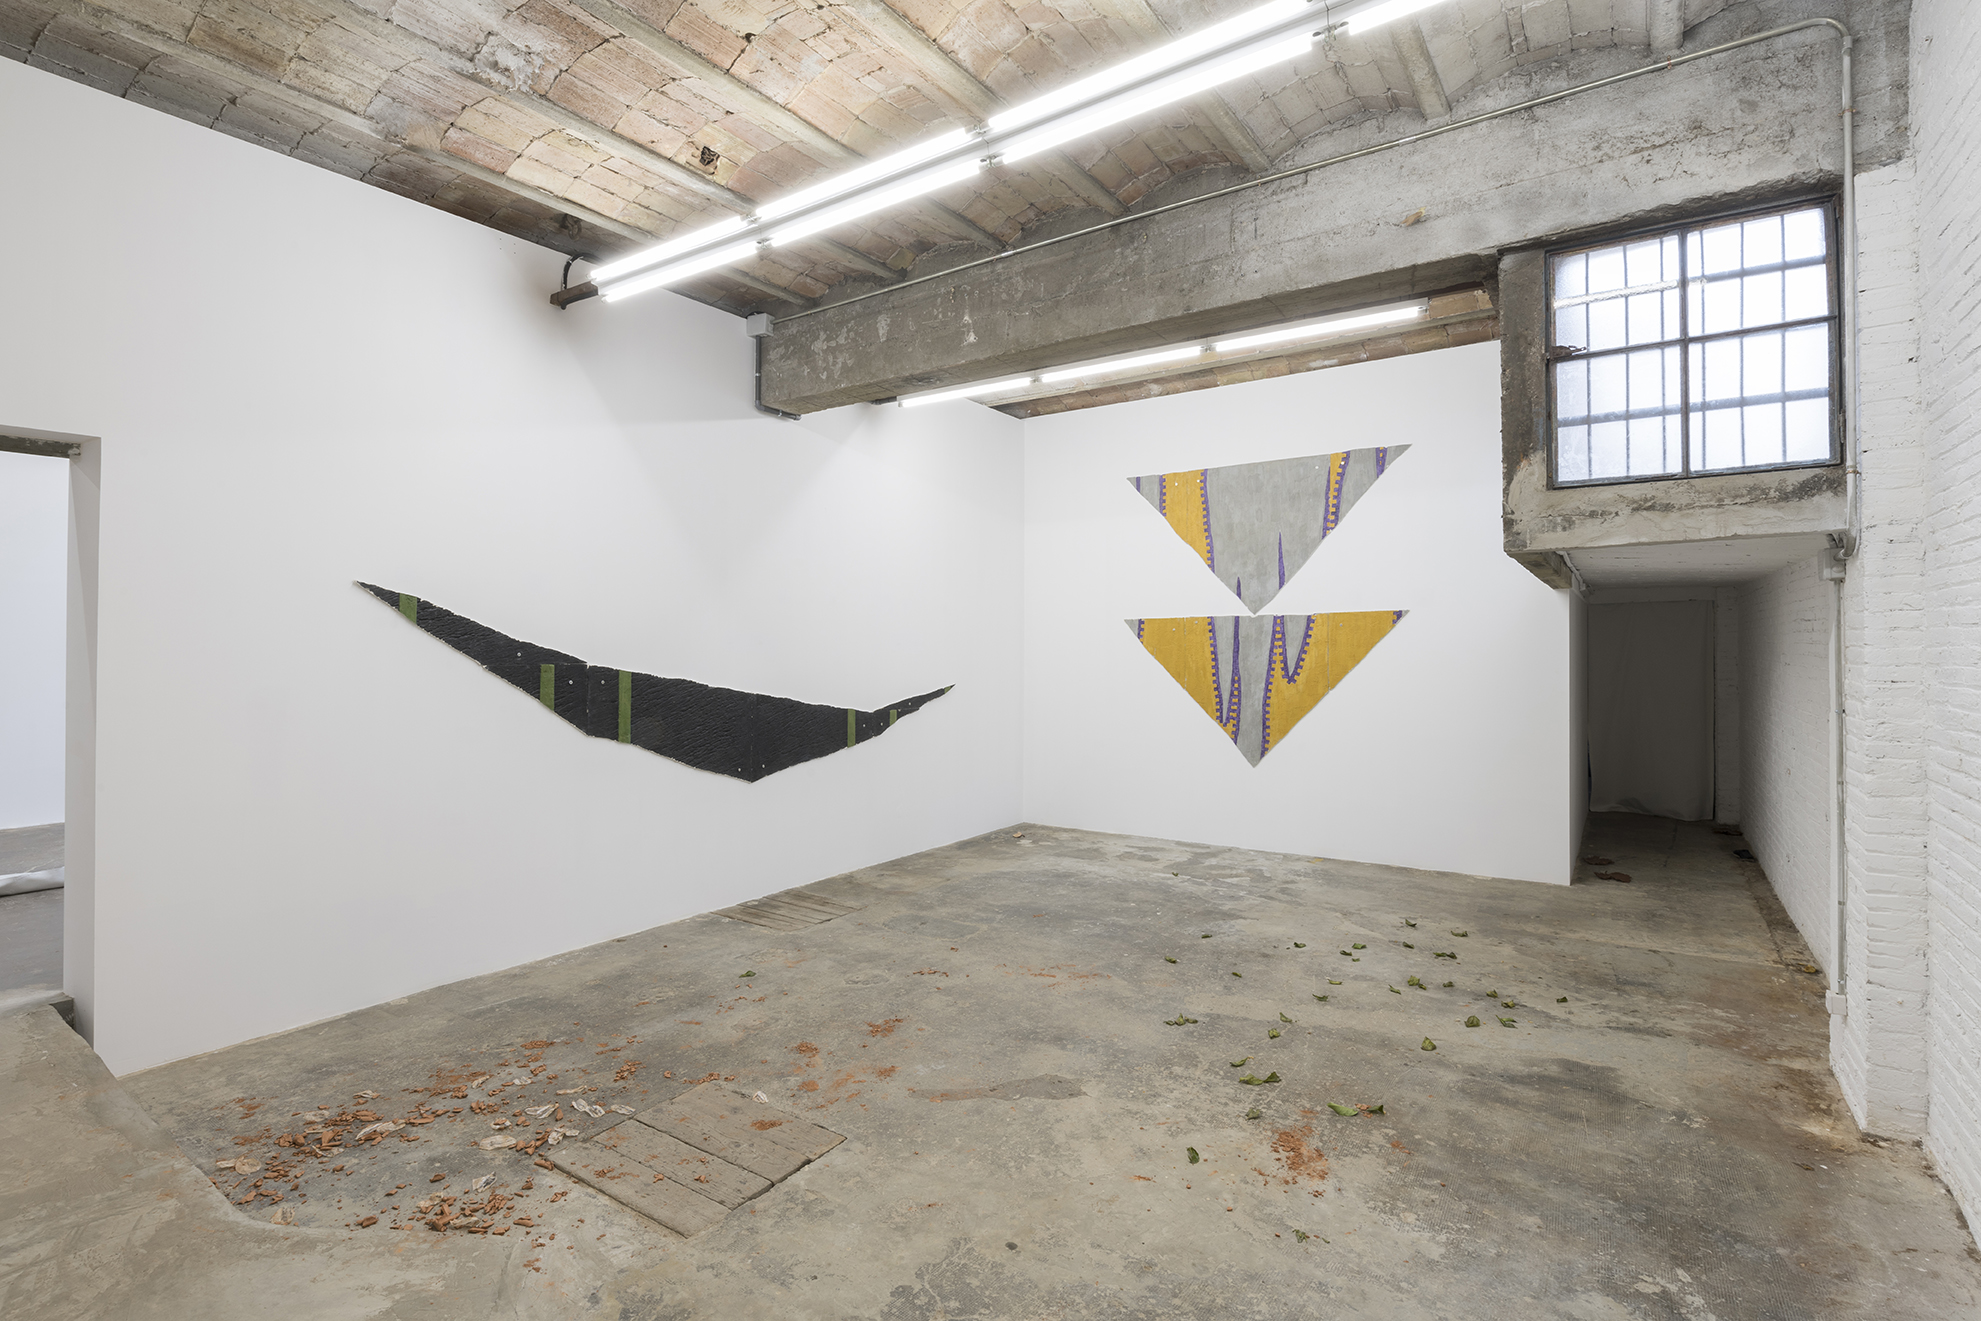 Mateo Revillo / Pentimento / 23.01 - 27.02